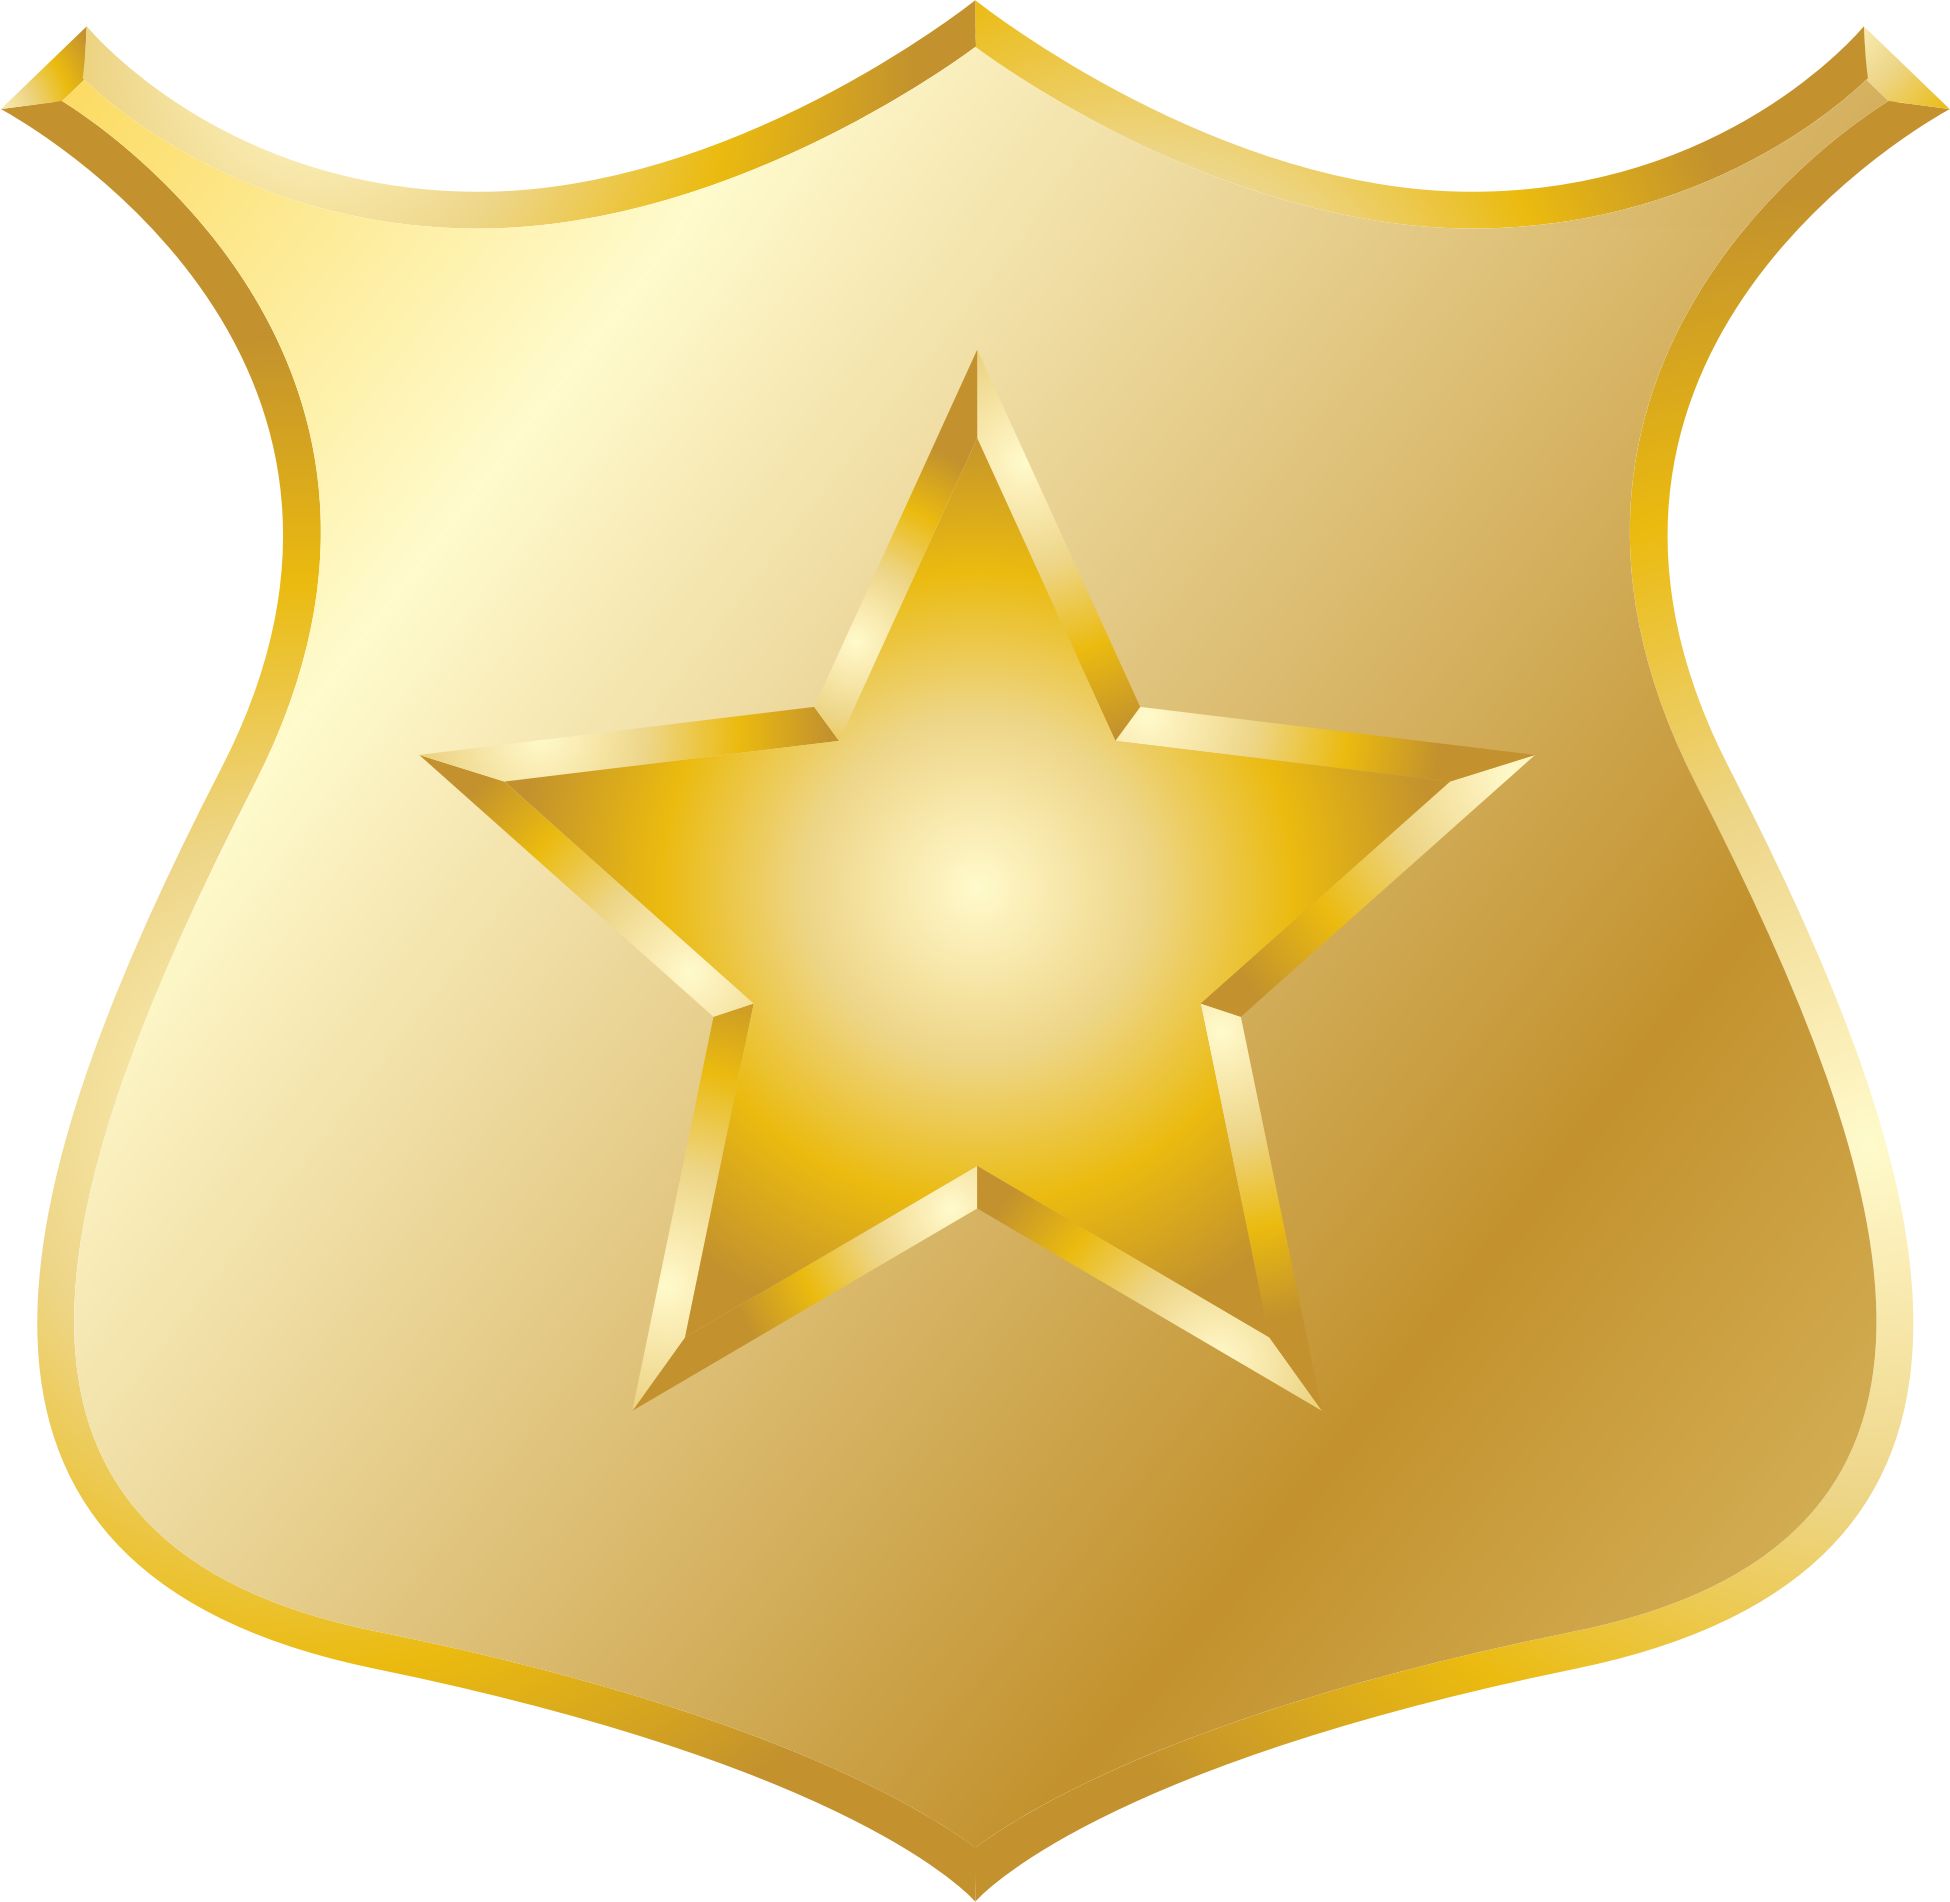 Gold police badge icon #12508.